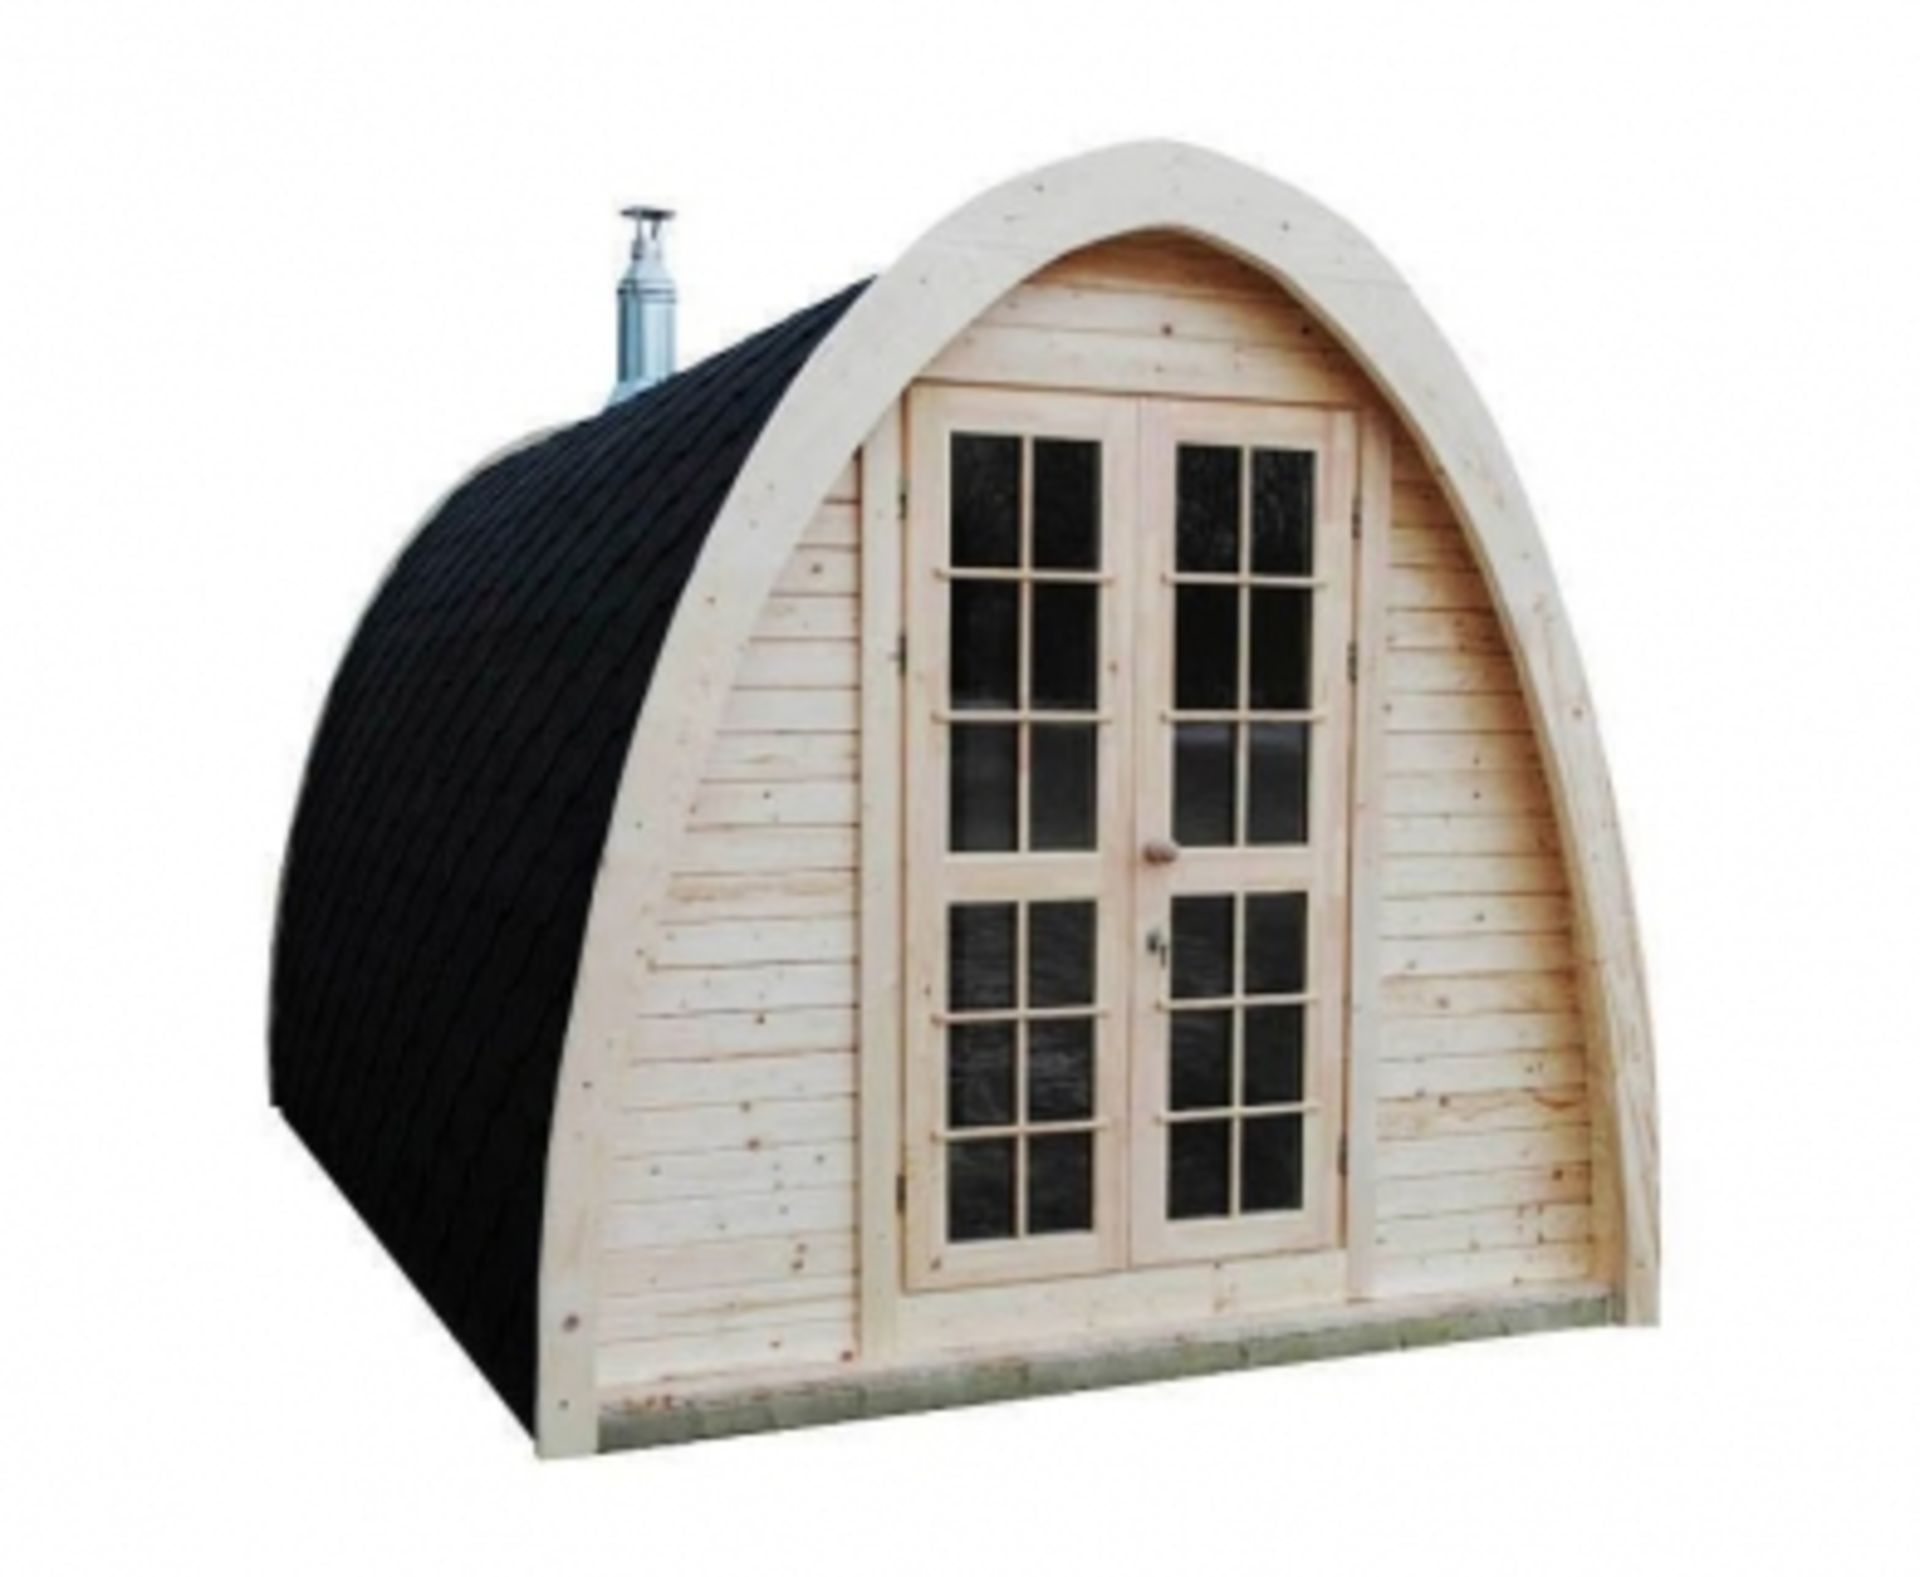 Lot 19046 - + VAT Brand New 2.4 x 2.3m Sauna Pod From Thermo Wood - Roof Covered With Bitumen Shingles - Two